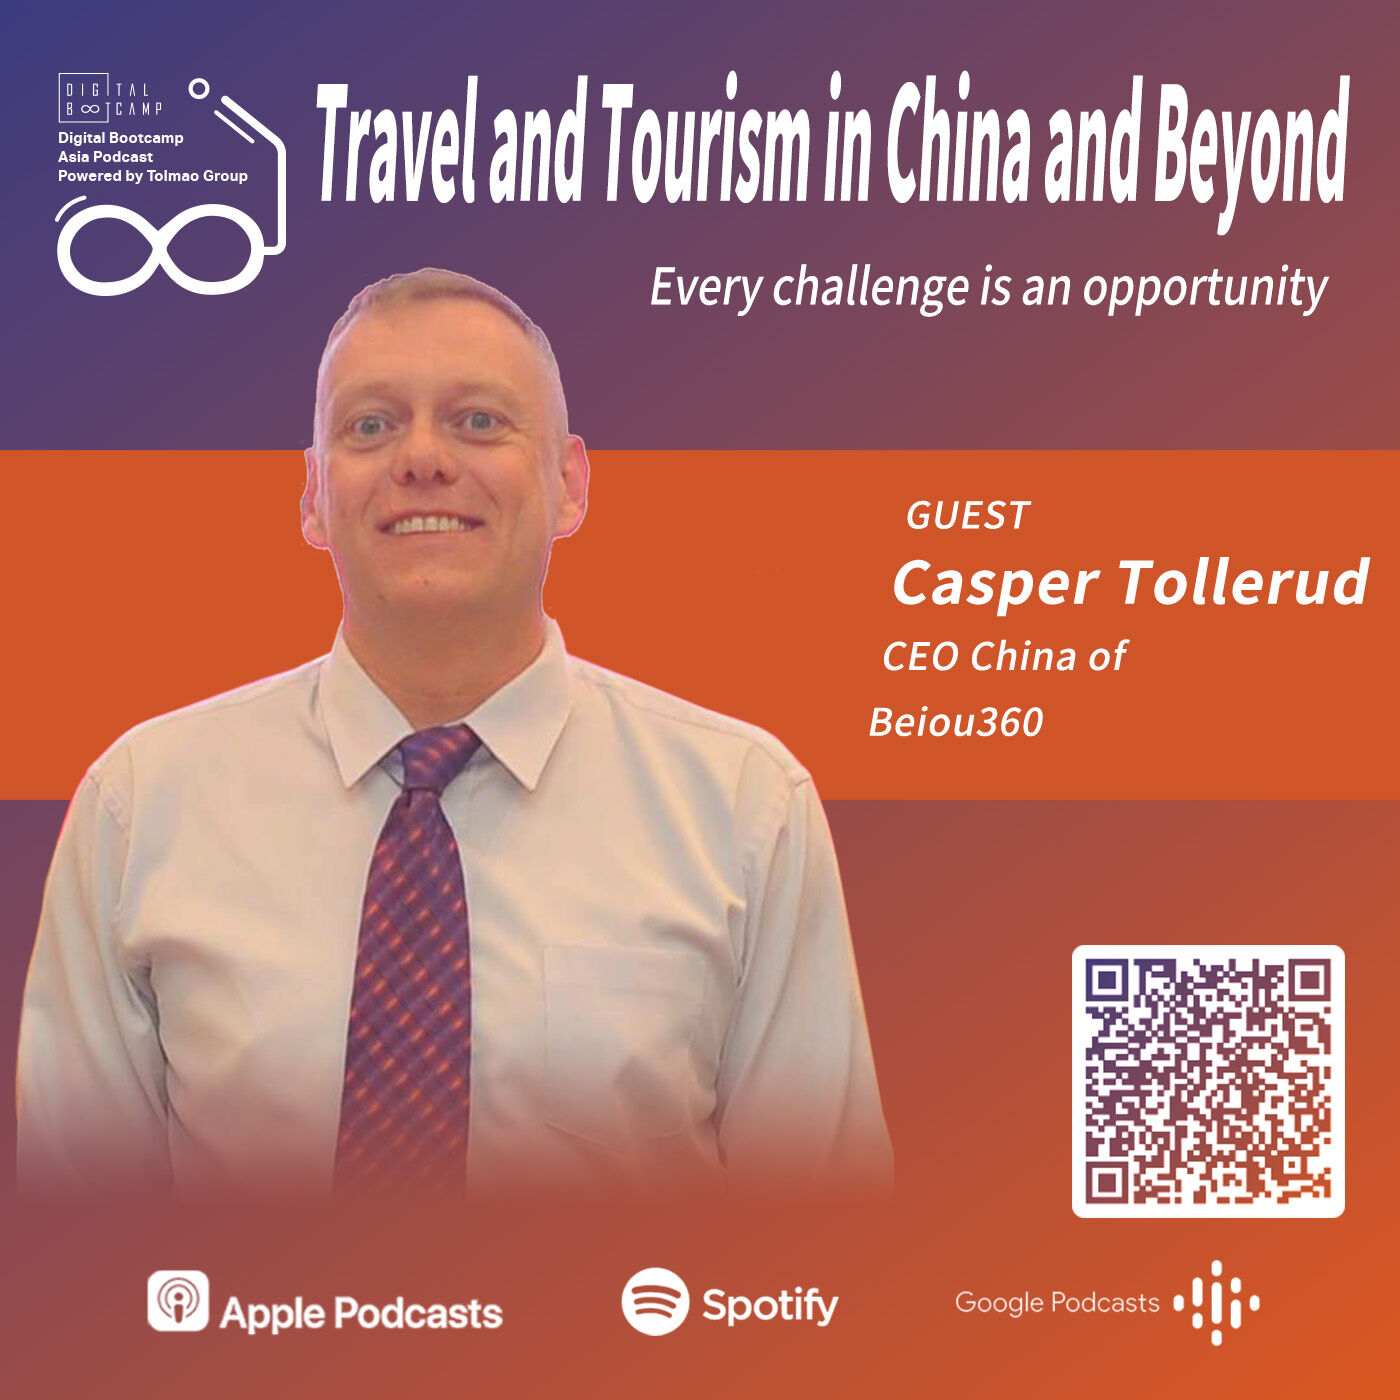 Travel and Tourism in China and Beyond with Casper Tollerud, CEO China of Beiou360